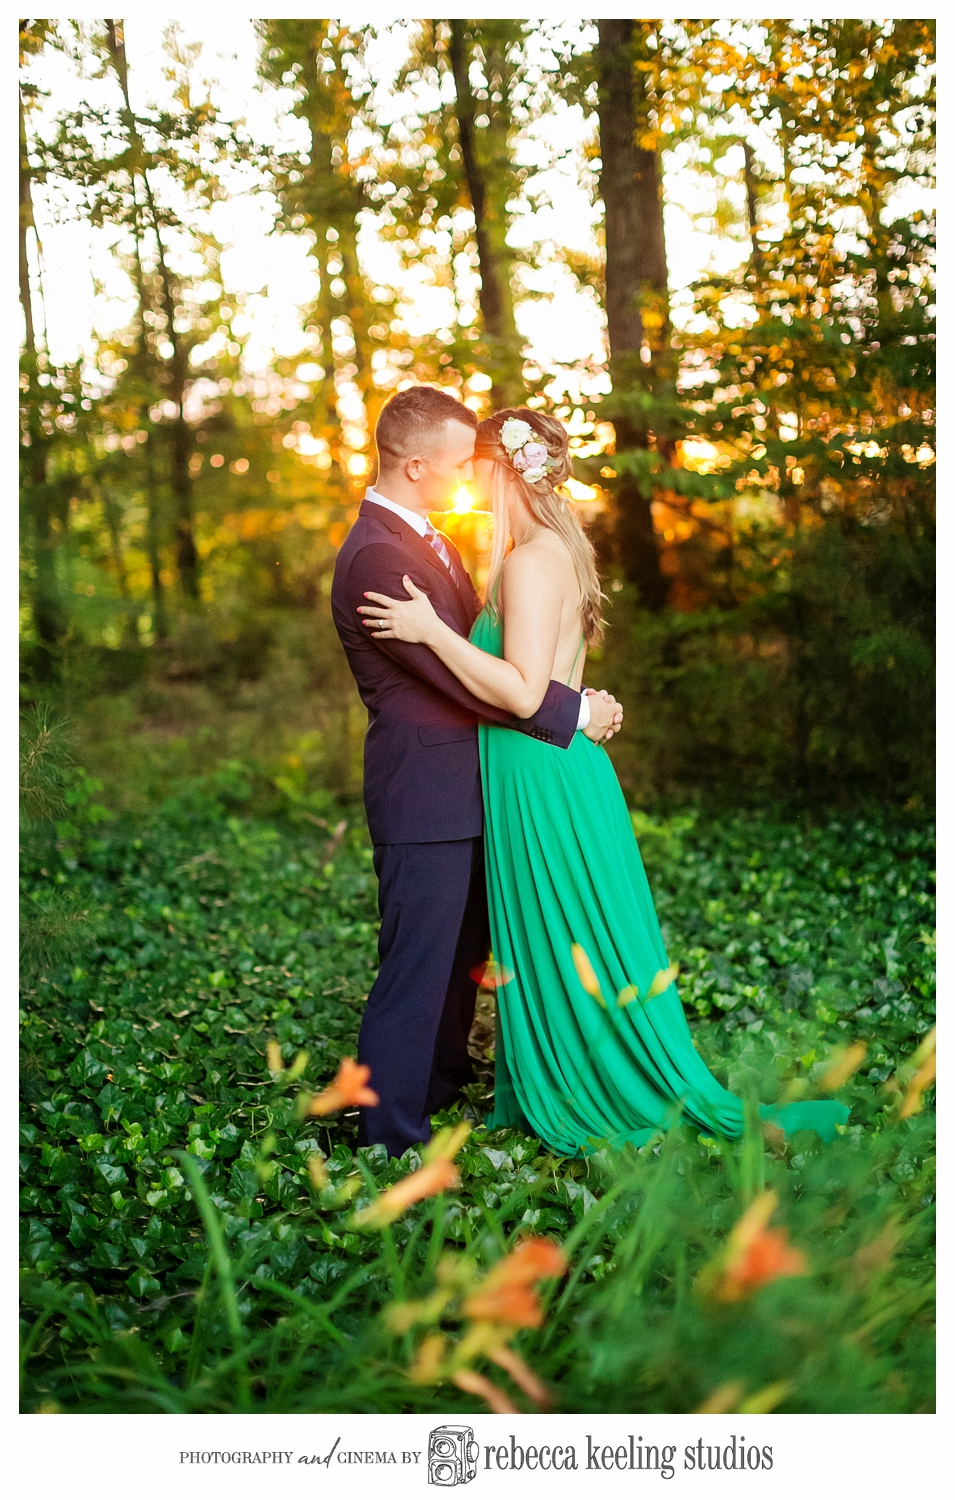 wedding-photography-rebecca-keeling